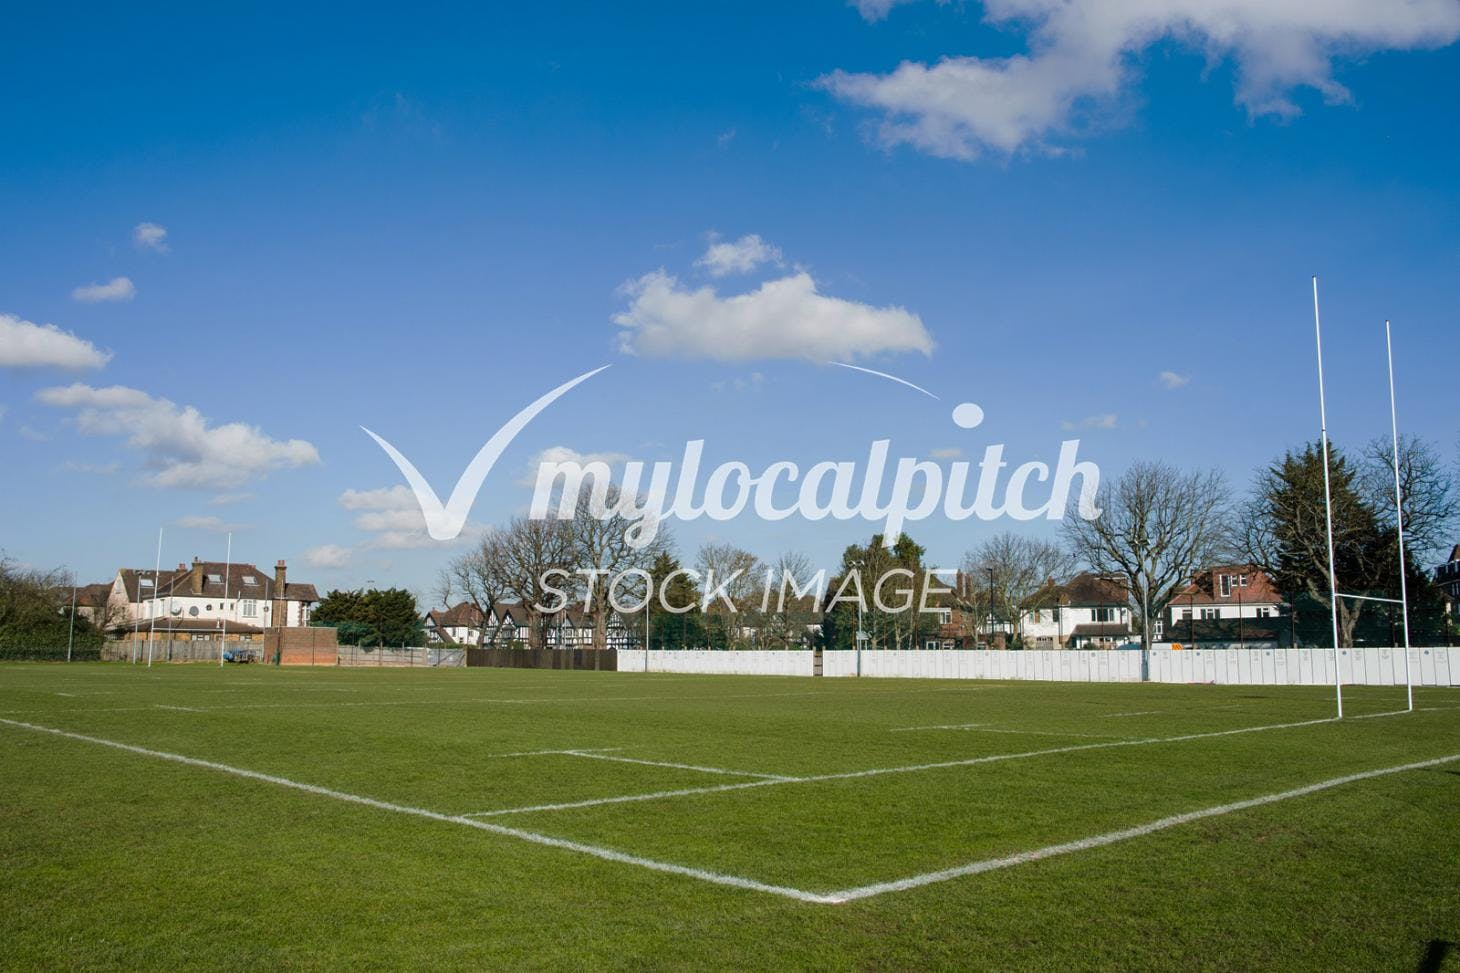 Francis Combe Academy Union | Grass rugby pitch